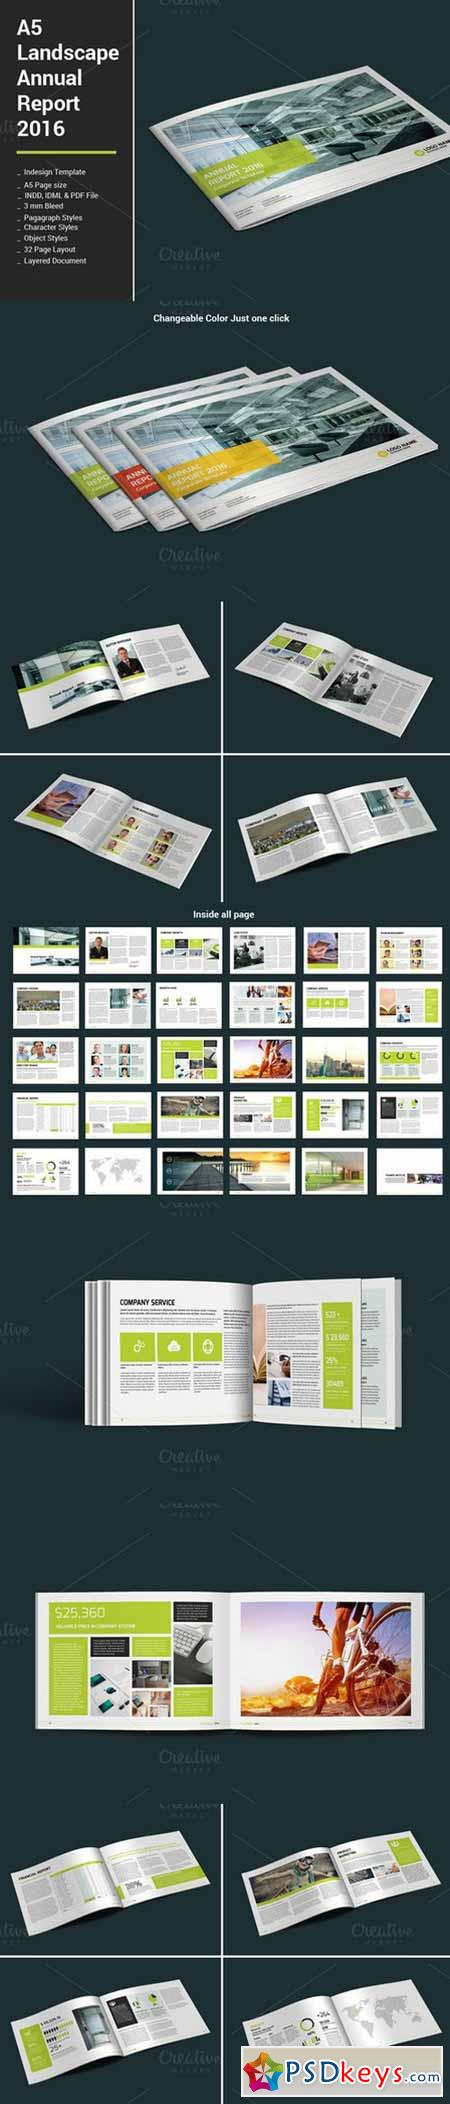 A5 Landscape Annual Report 2016 594392